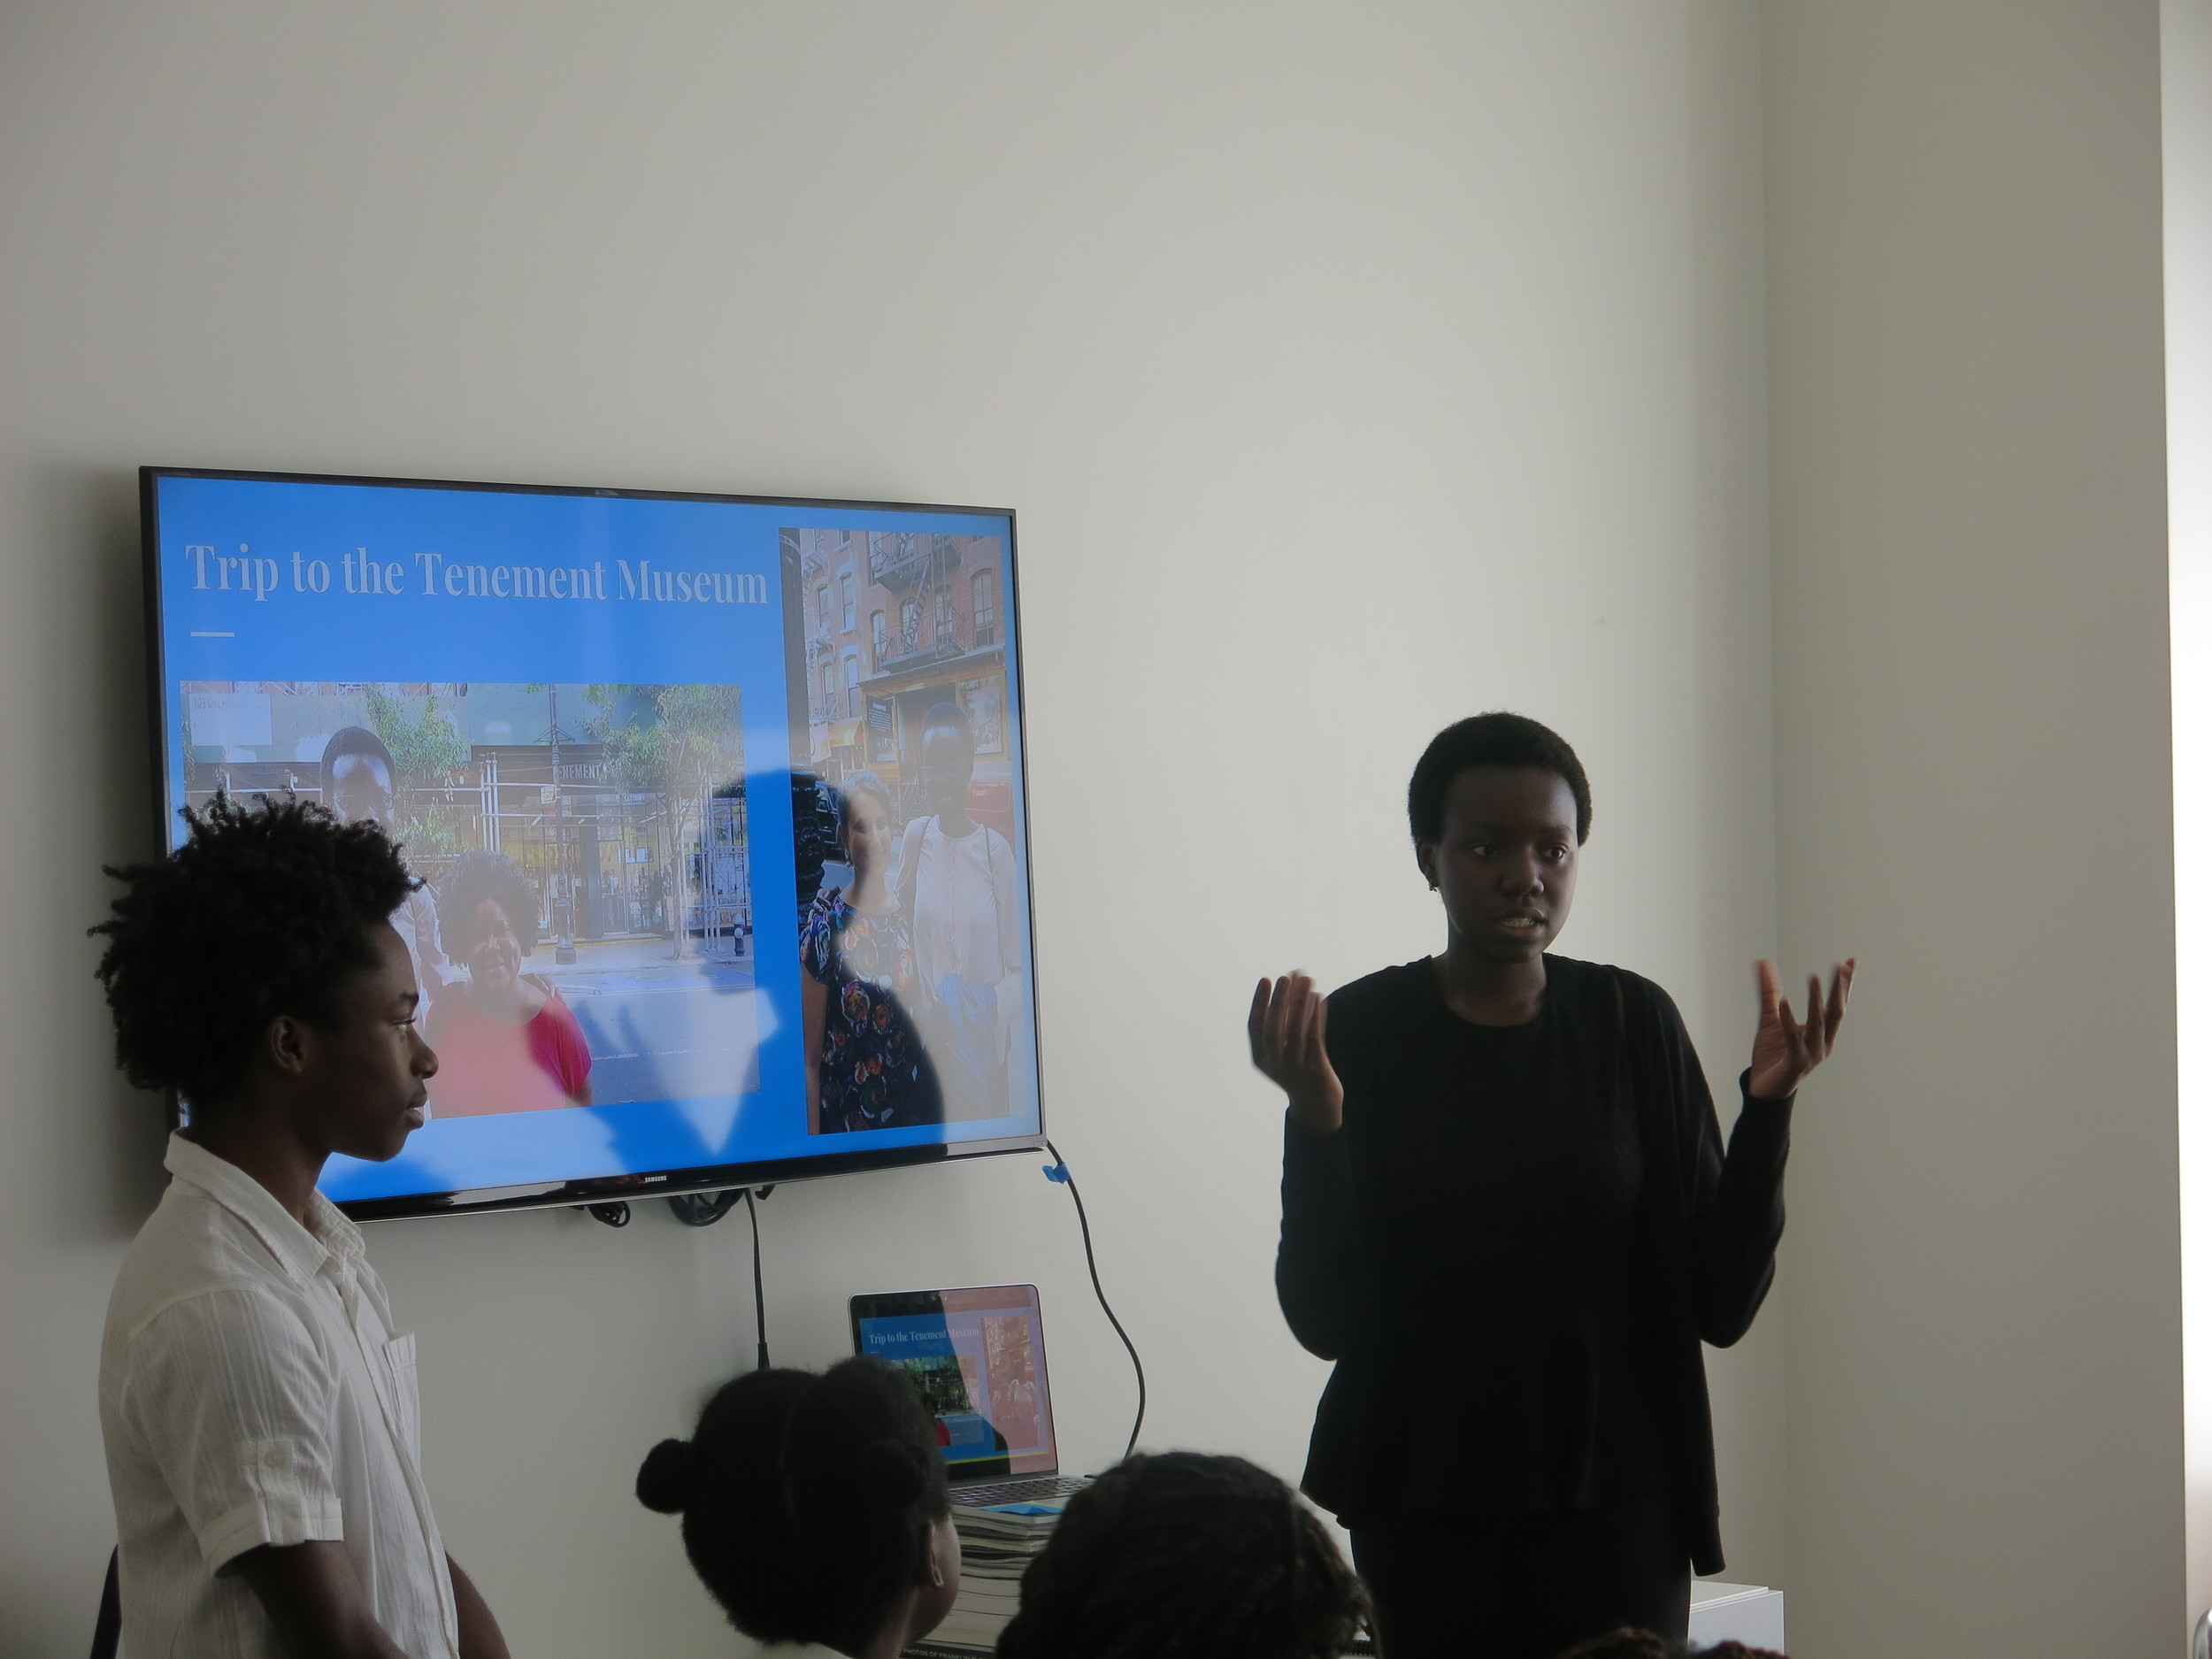 As part of their internship, Isaiah and Marie visit cultural institutions around the city, including the Tenement Museum. Here, they talk about what that experience was like.